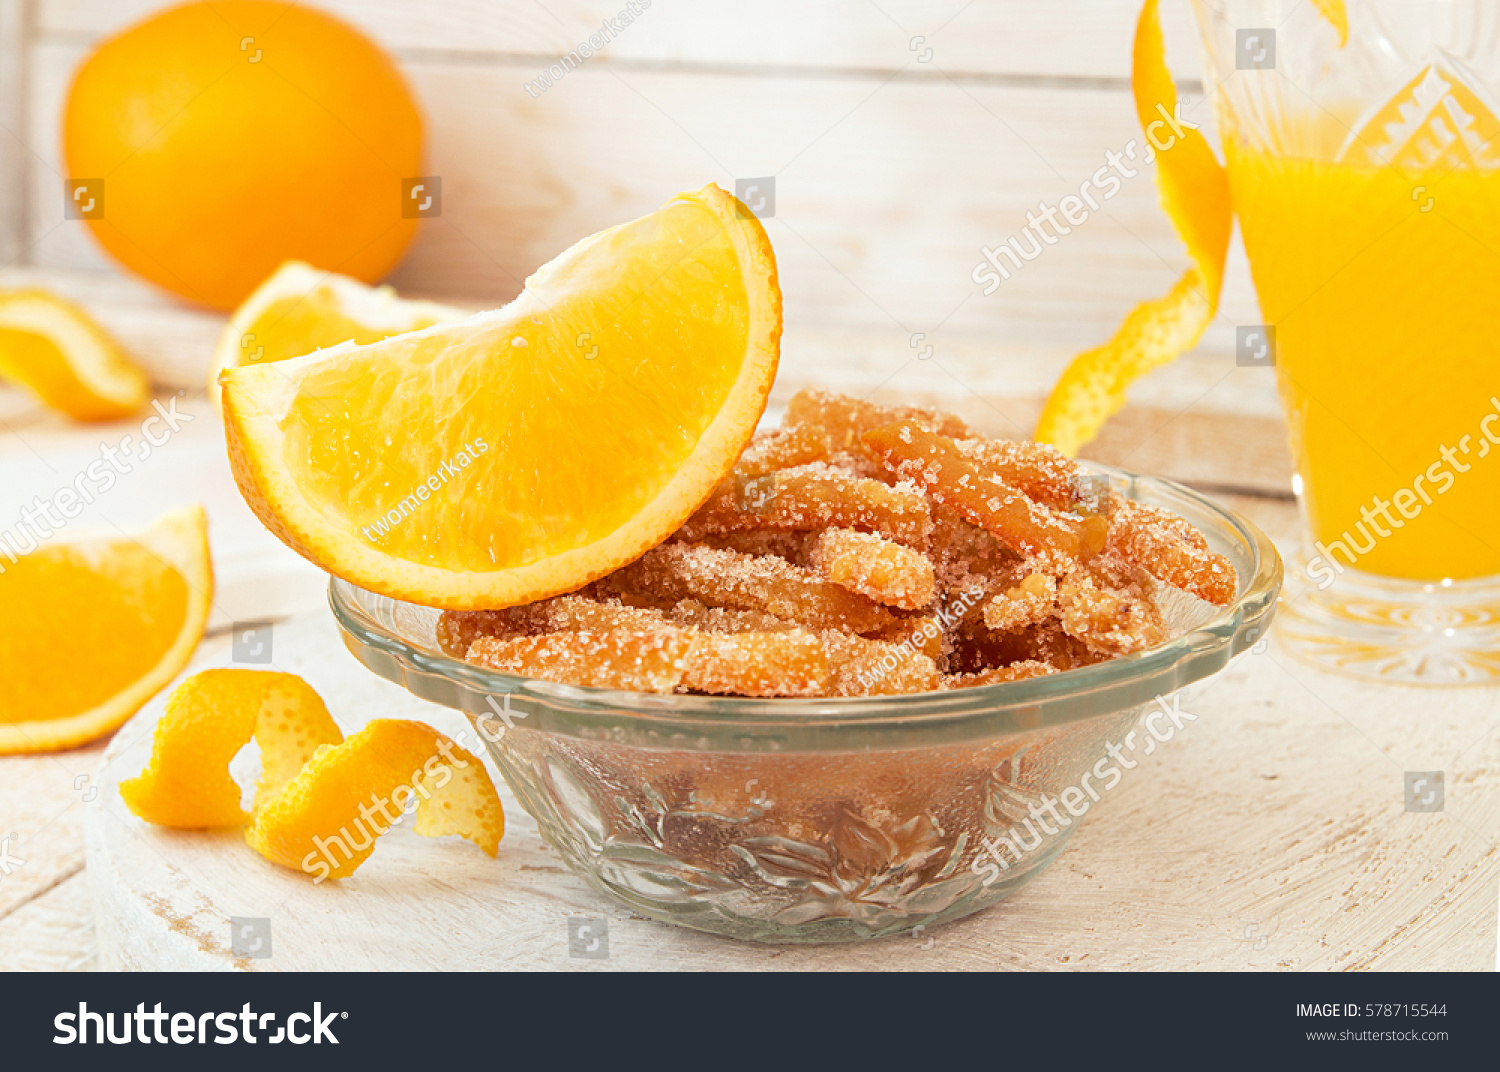 Candied Orange Slice Cake